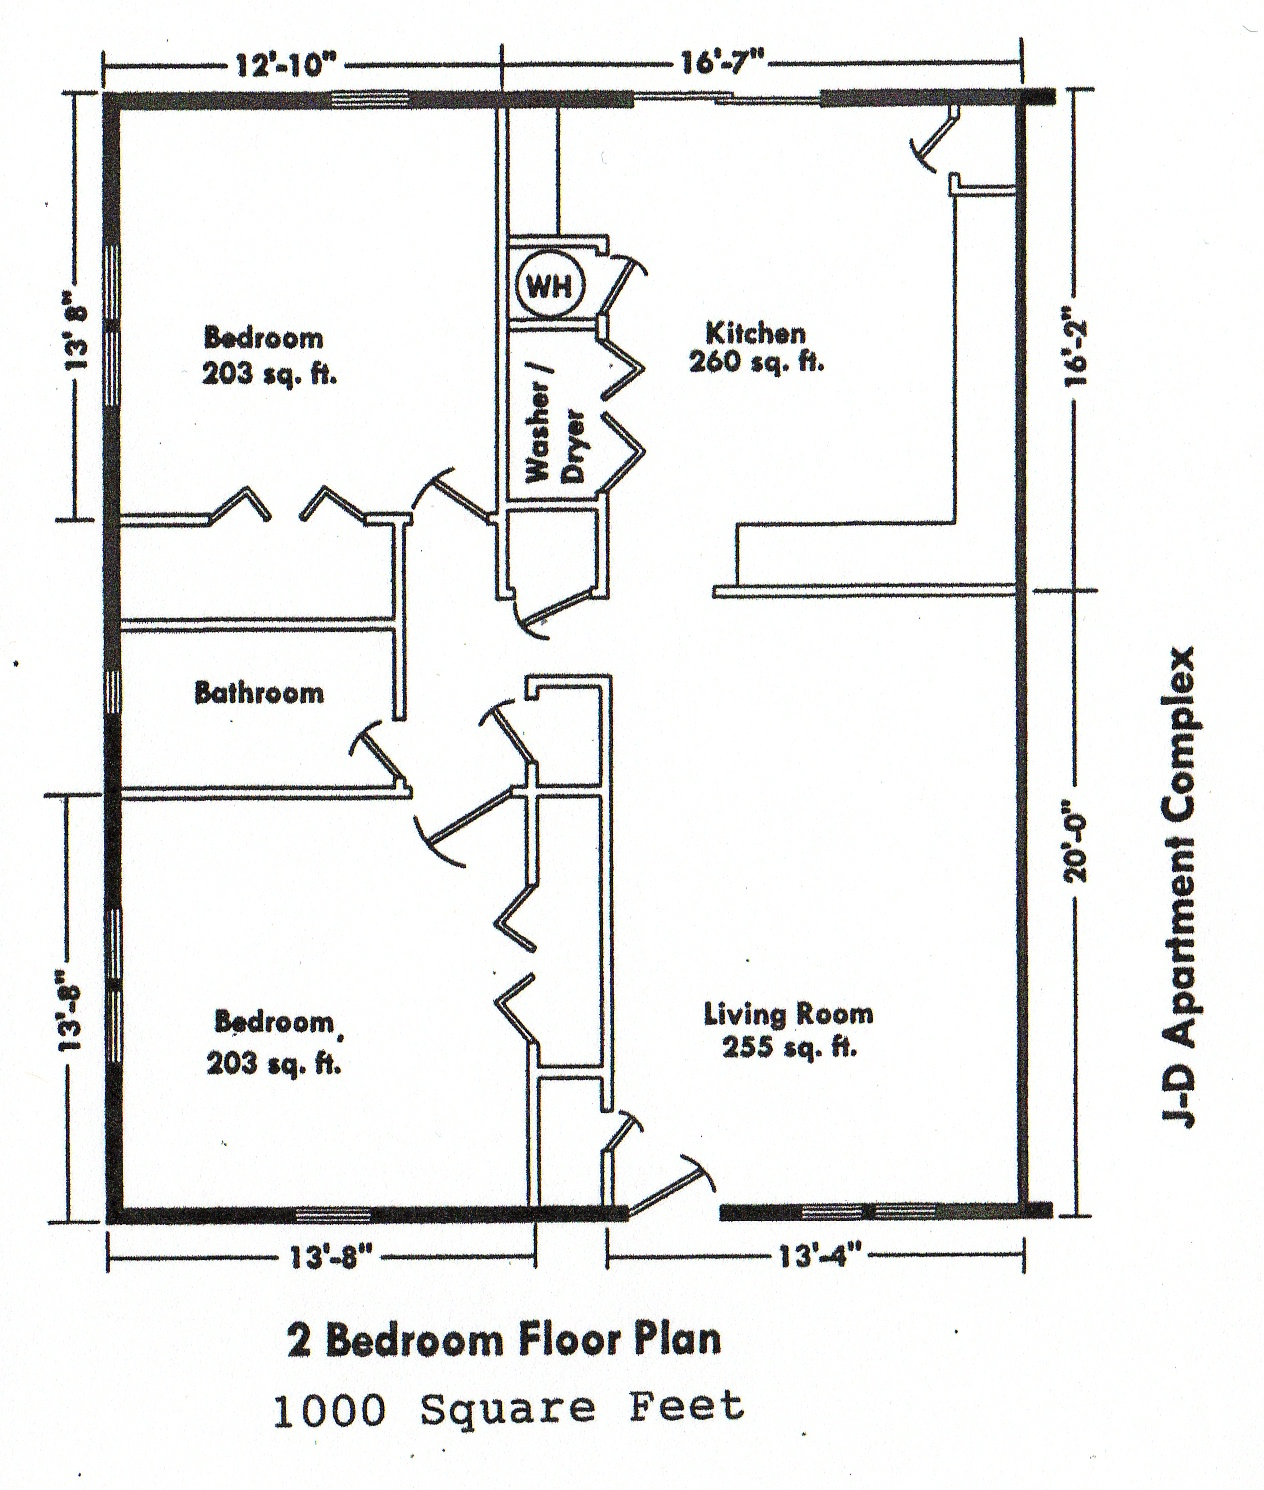 Modular home modular homes 2 bedroom floor plans - Floor plans for a bedroom house decor ...